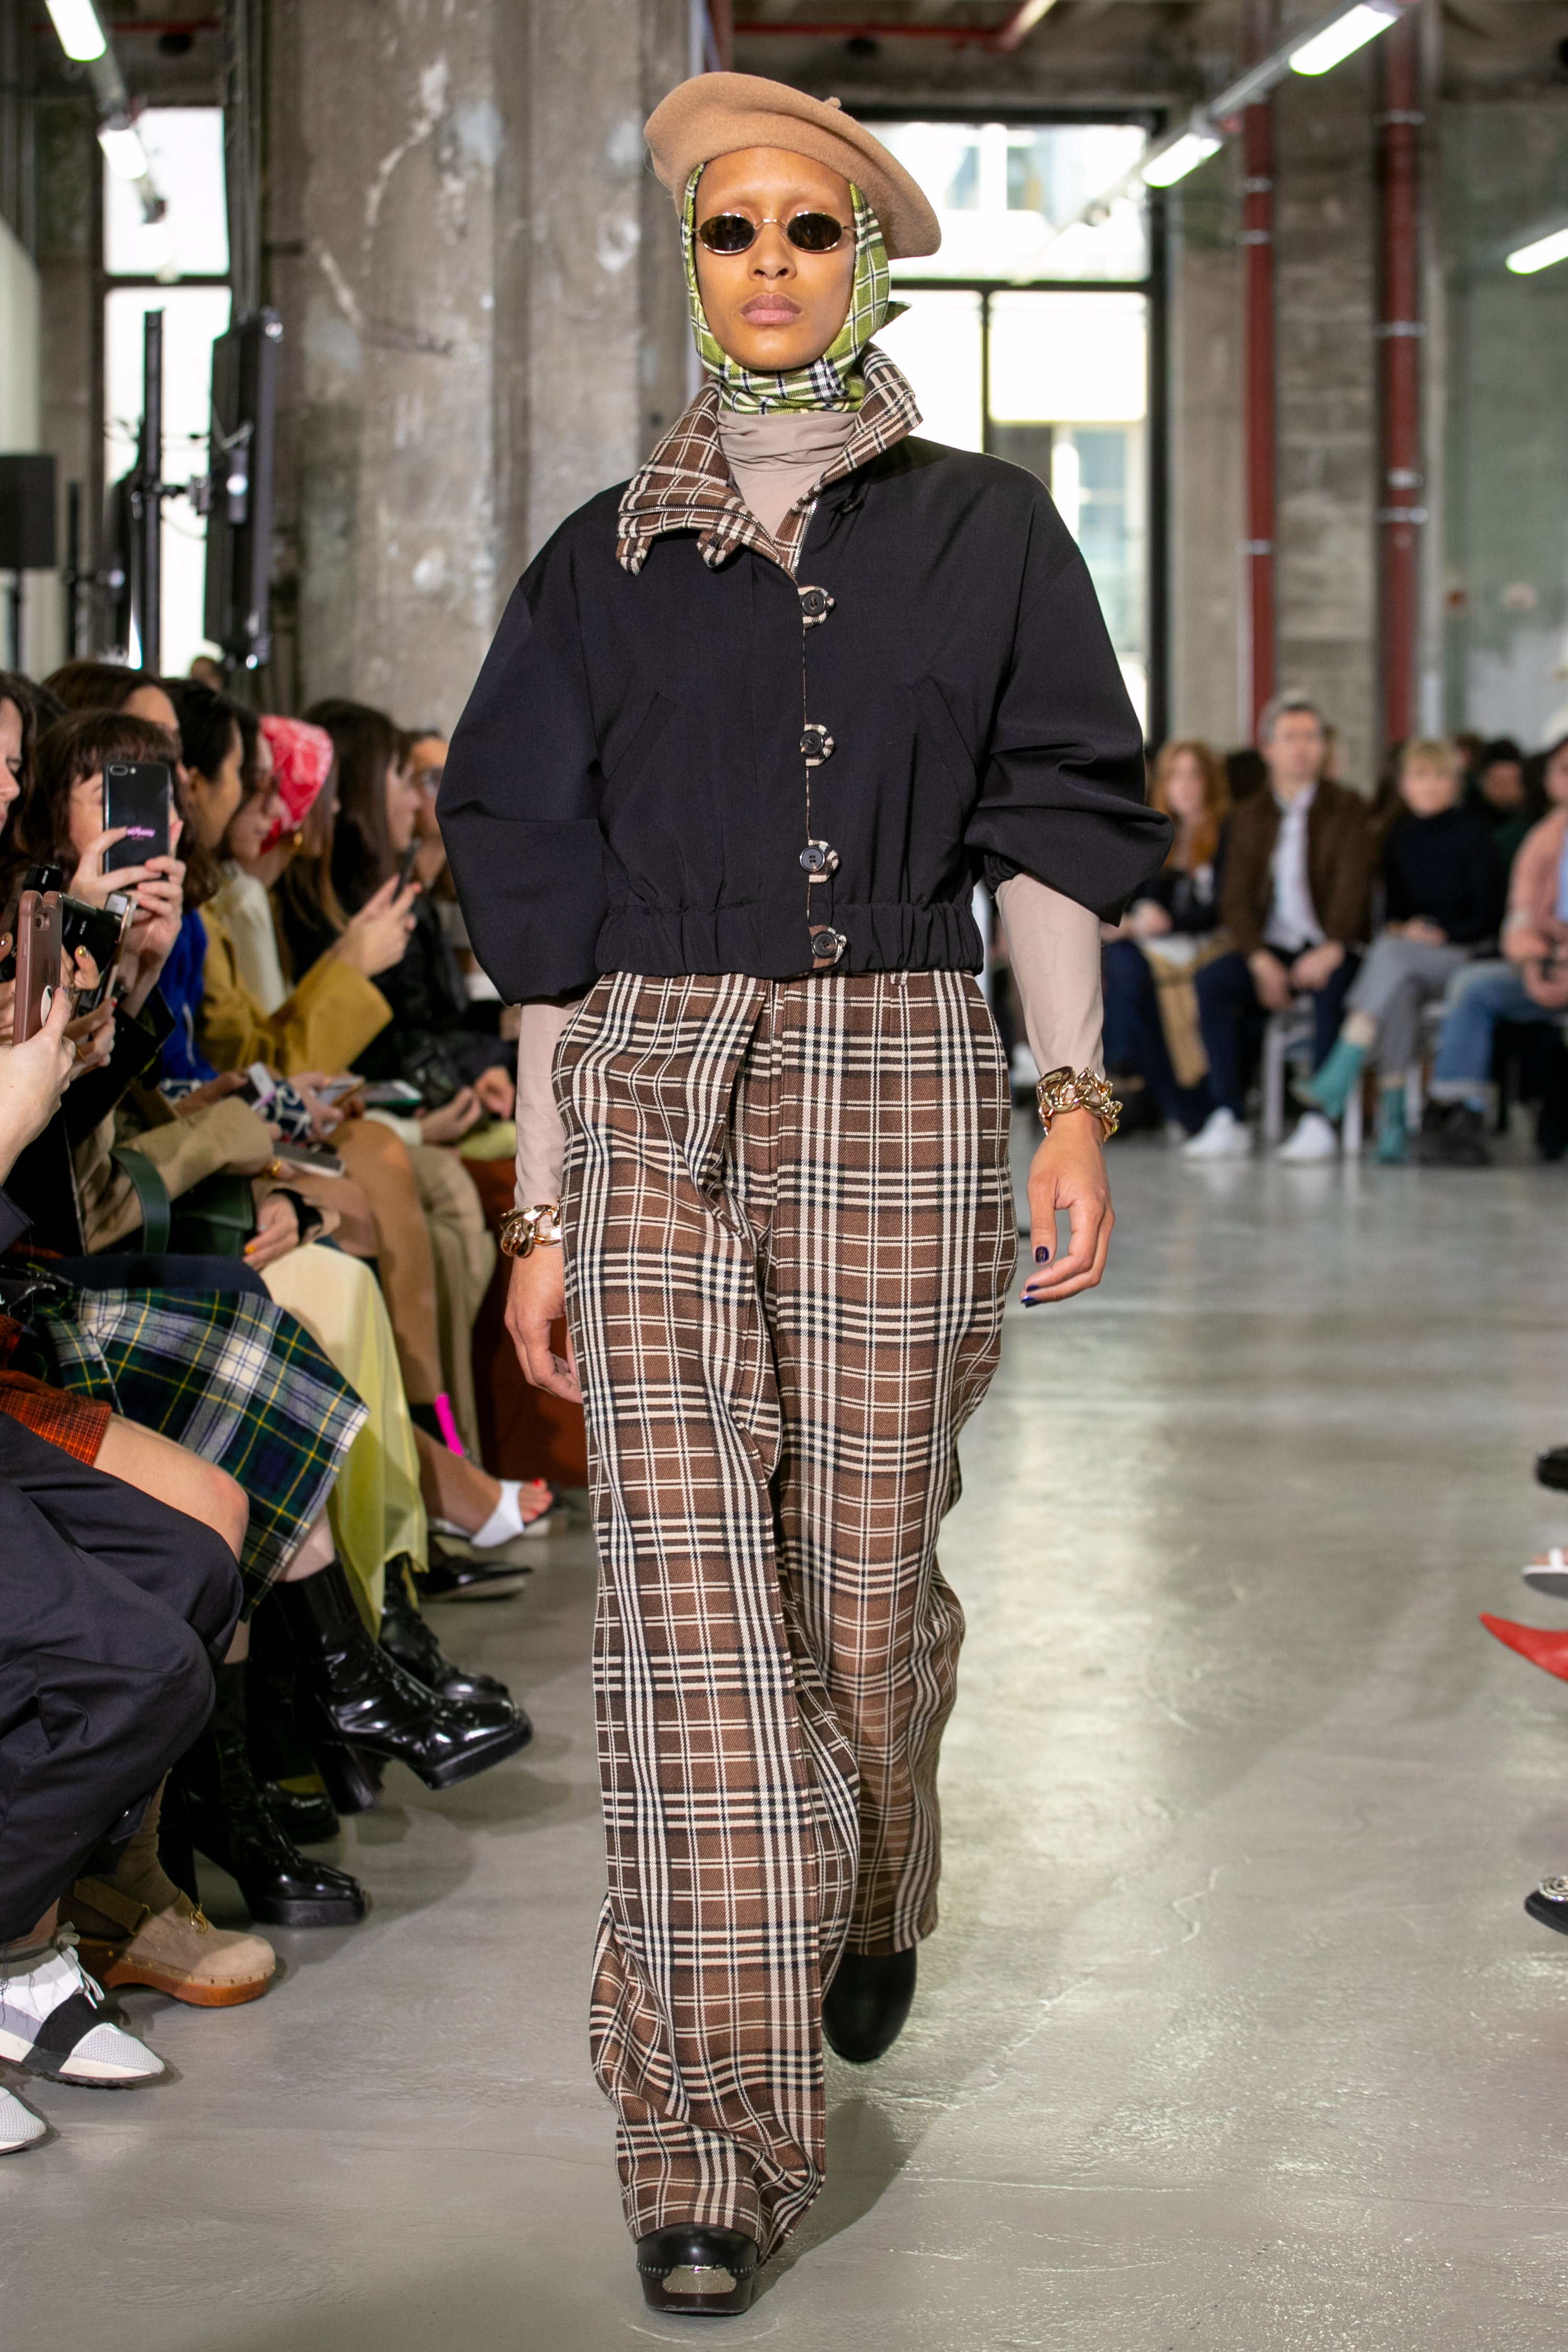 Modest Fashion In 2019: What Fall's Runways Suggest About The Future